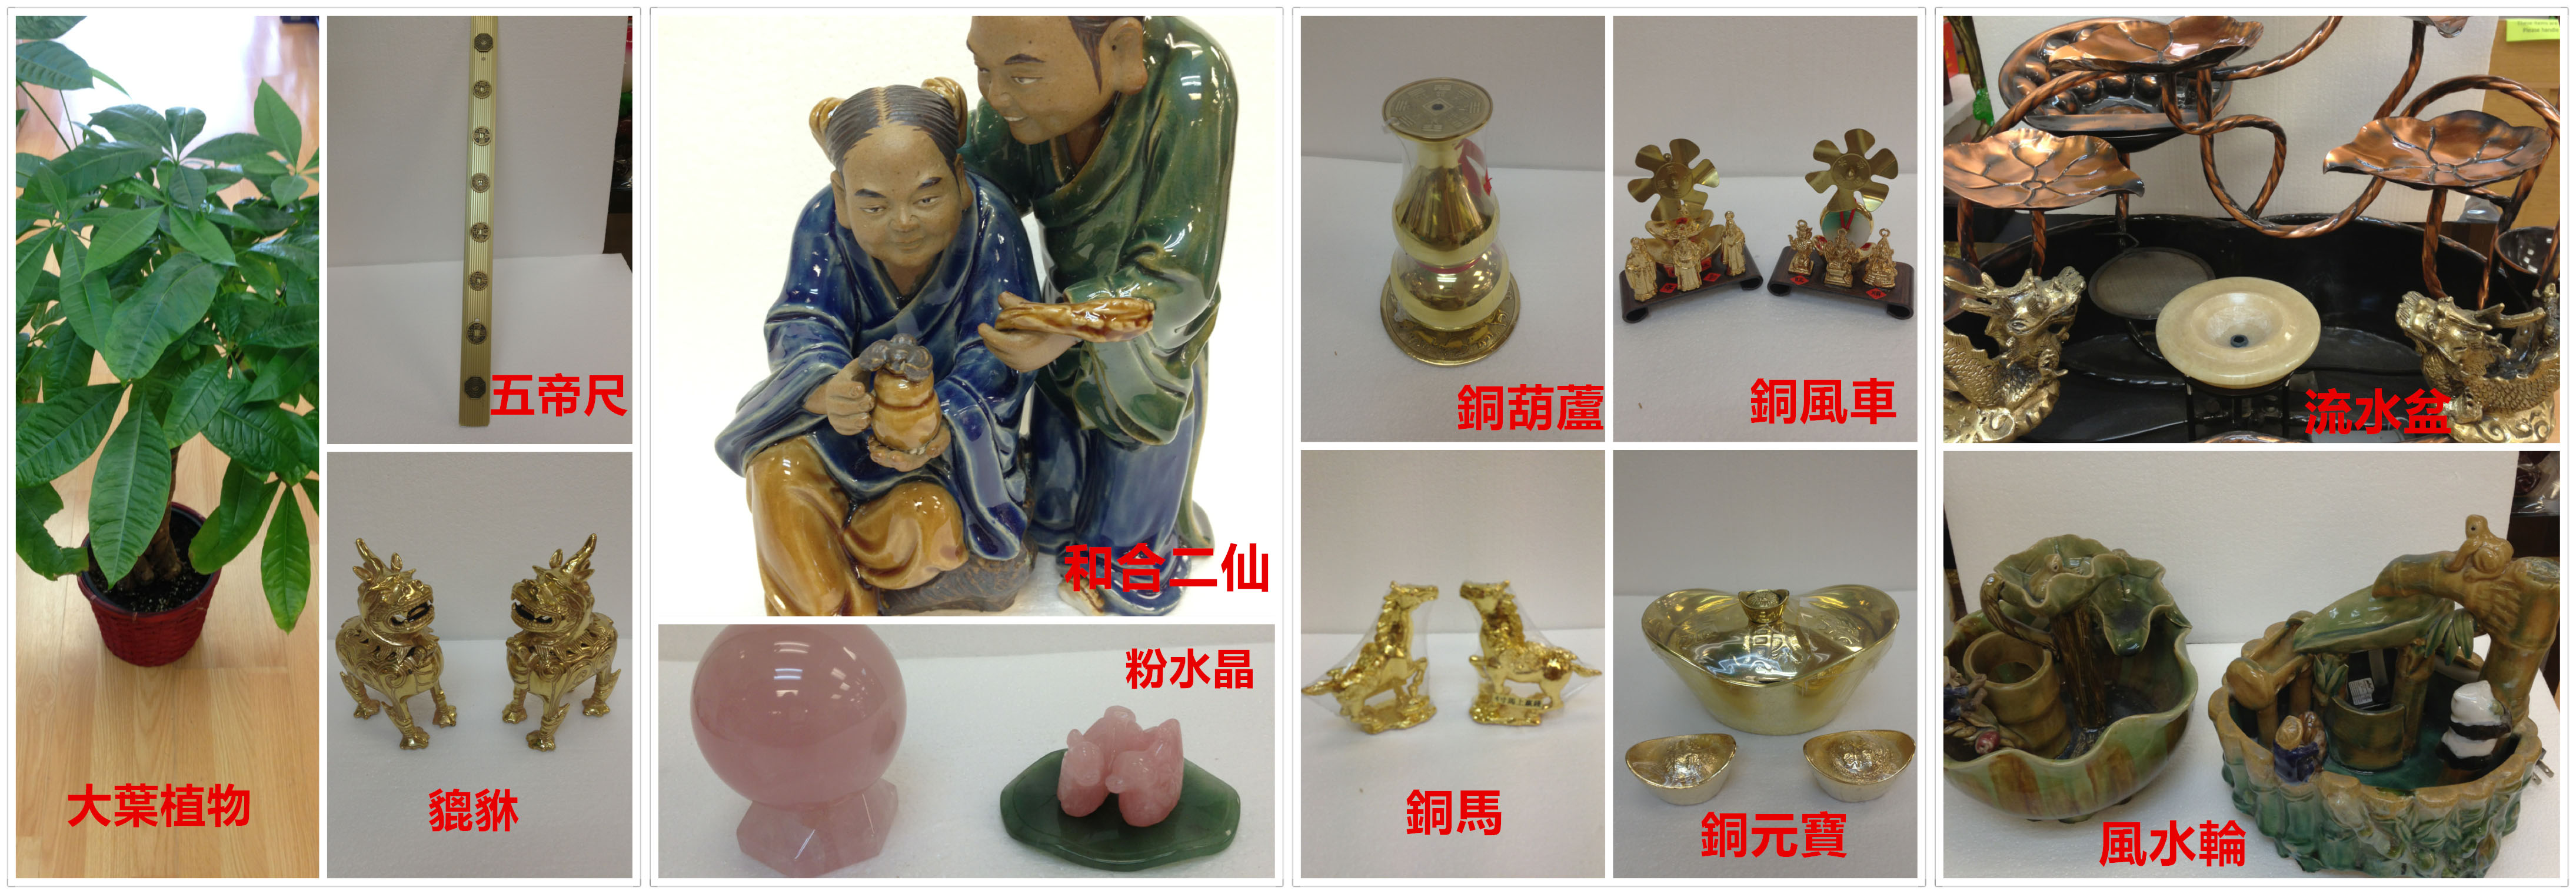 4 fengshui objects 2